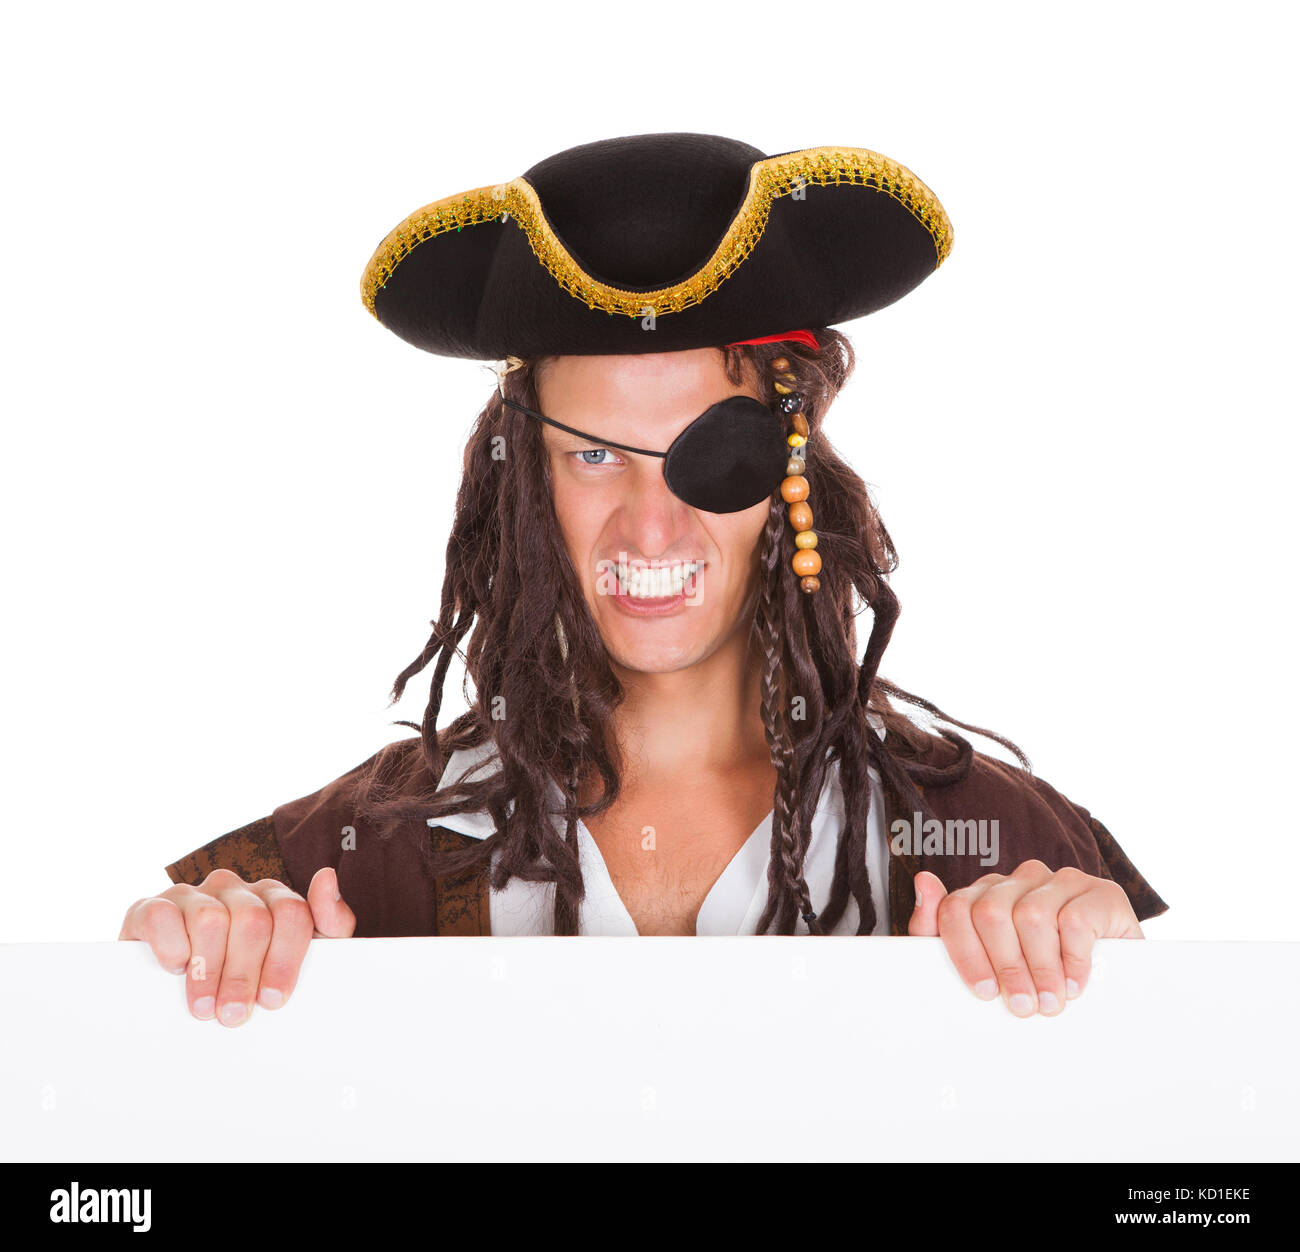 Angry Pirate Holding Blank Placard In Mouth On White Background - Stock Image